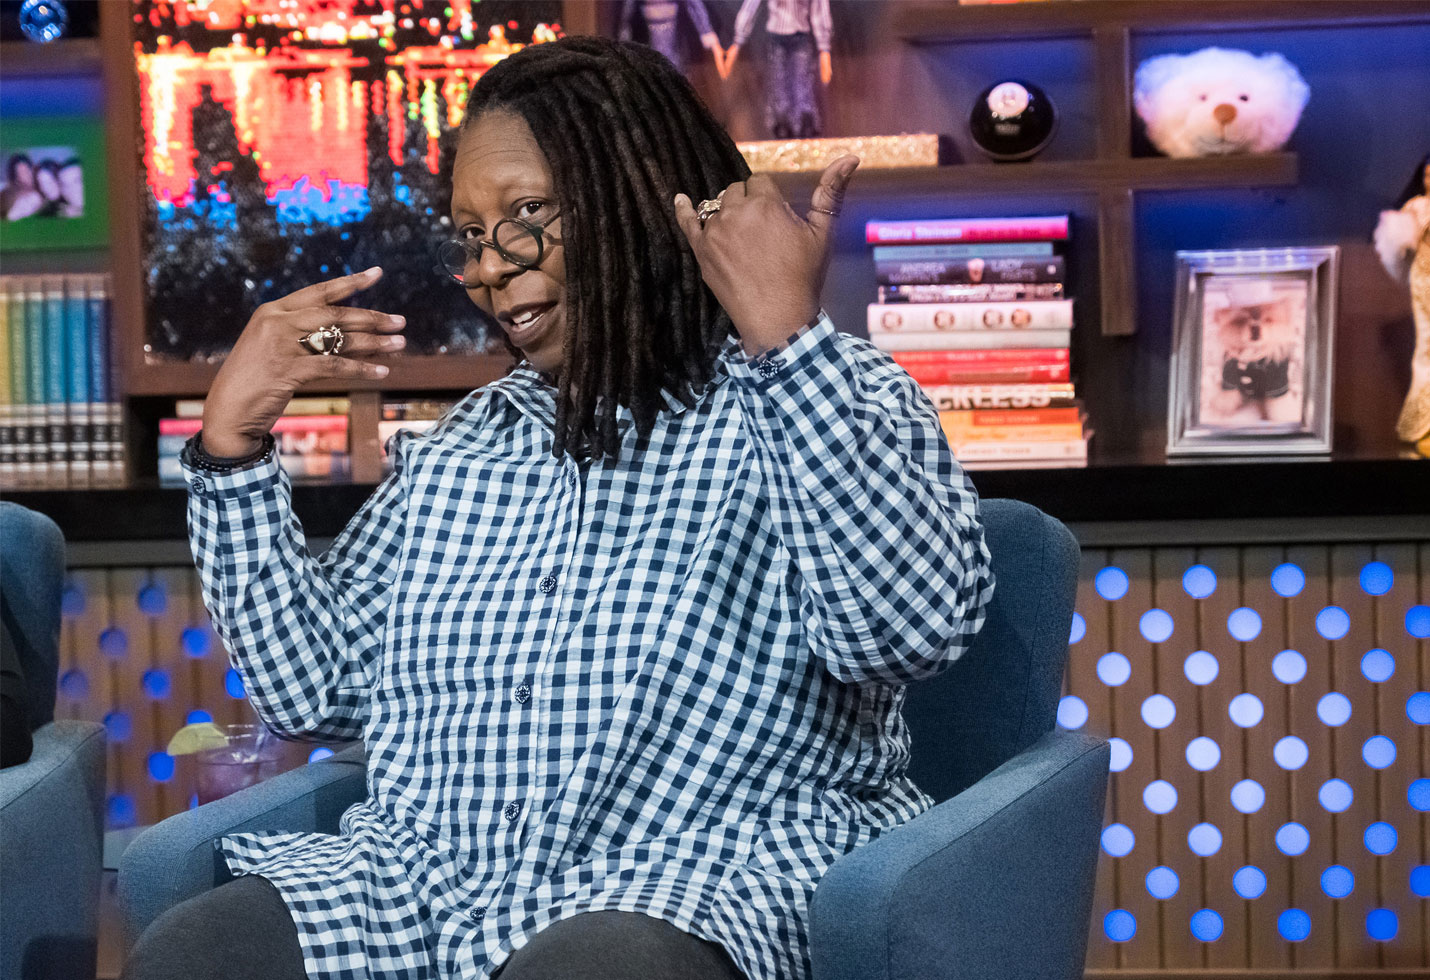 Whoopi goldberg pneumonia 1 in 3 chance dying the view